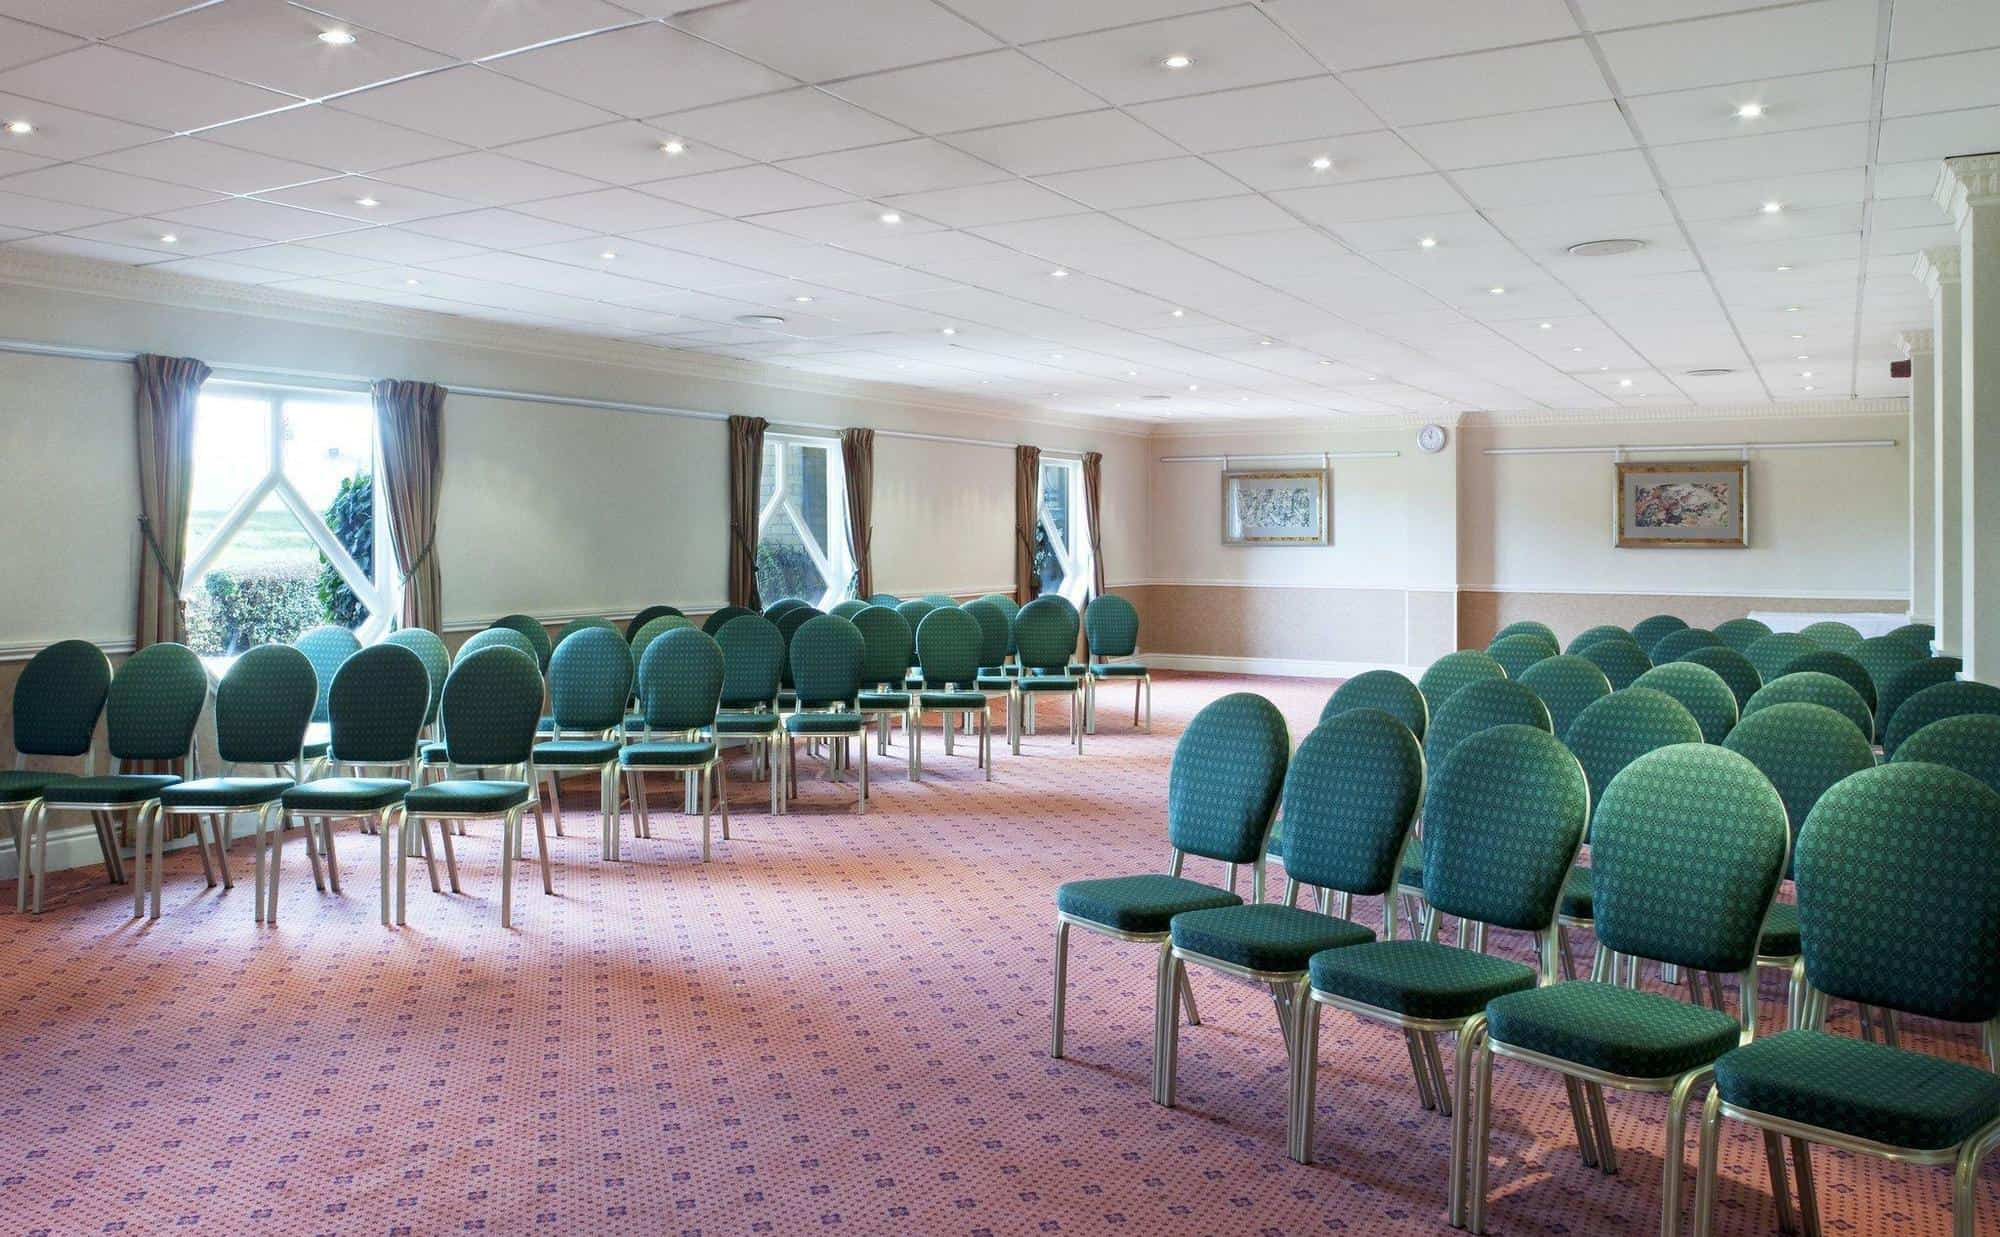 Meeting room in lecture presentation configuration at Citrus Hotel Coventry